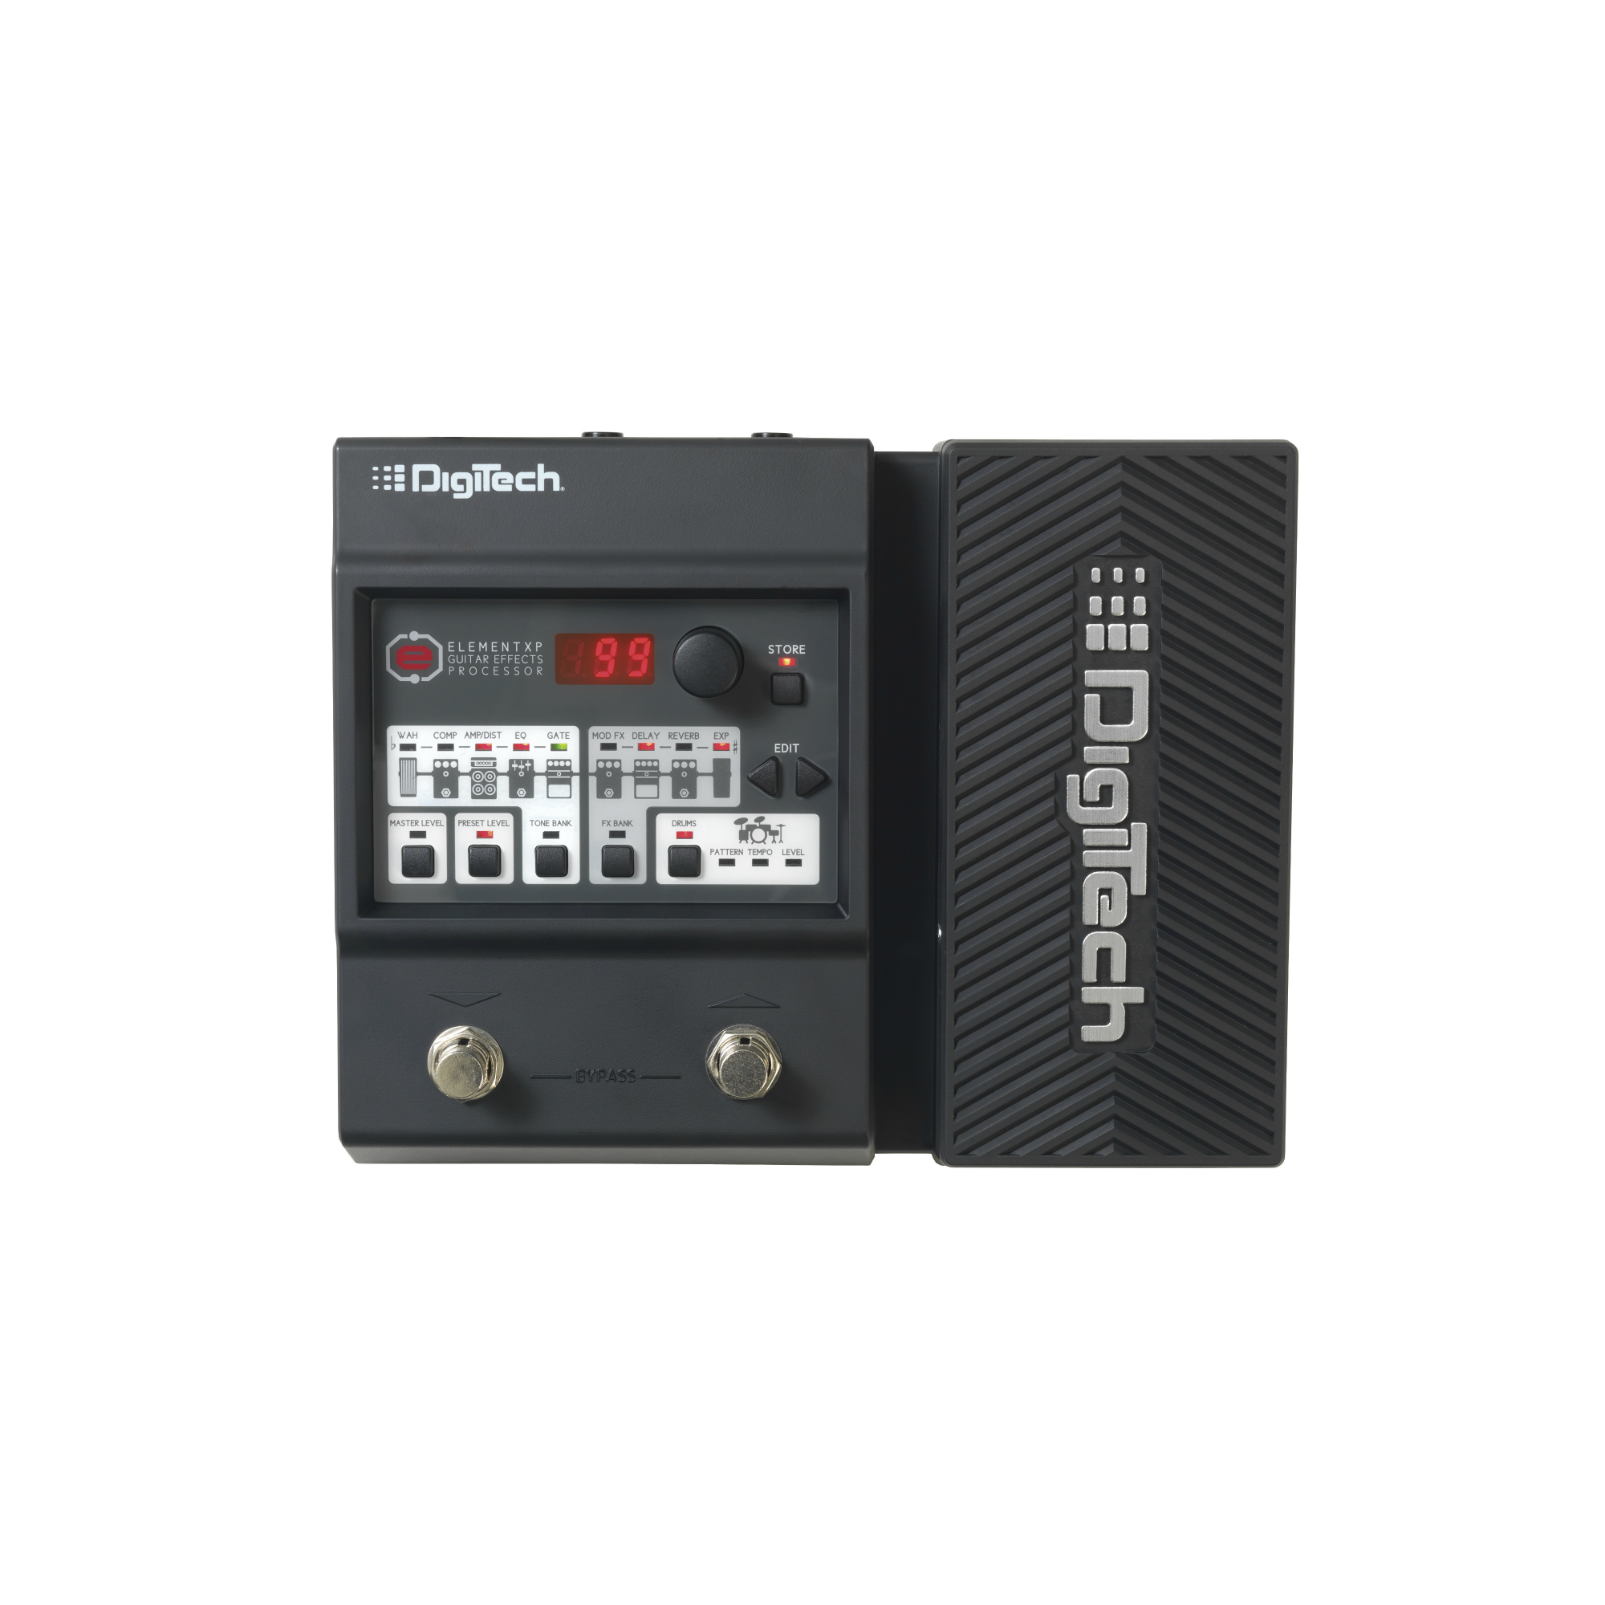 DigiTech Element XP - Black - Guitar Multi-Effects Processor with Expression Pedal - Front